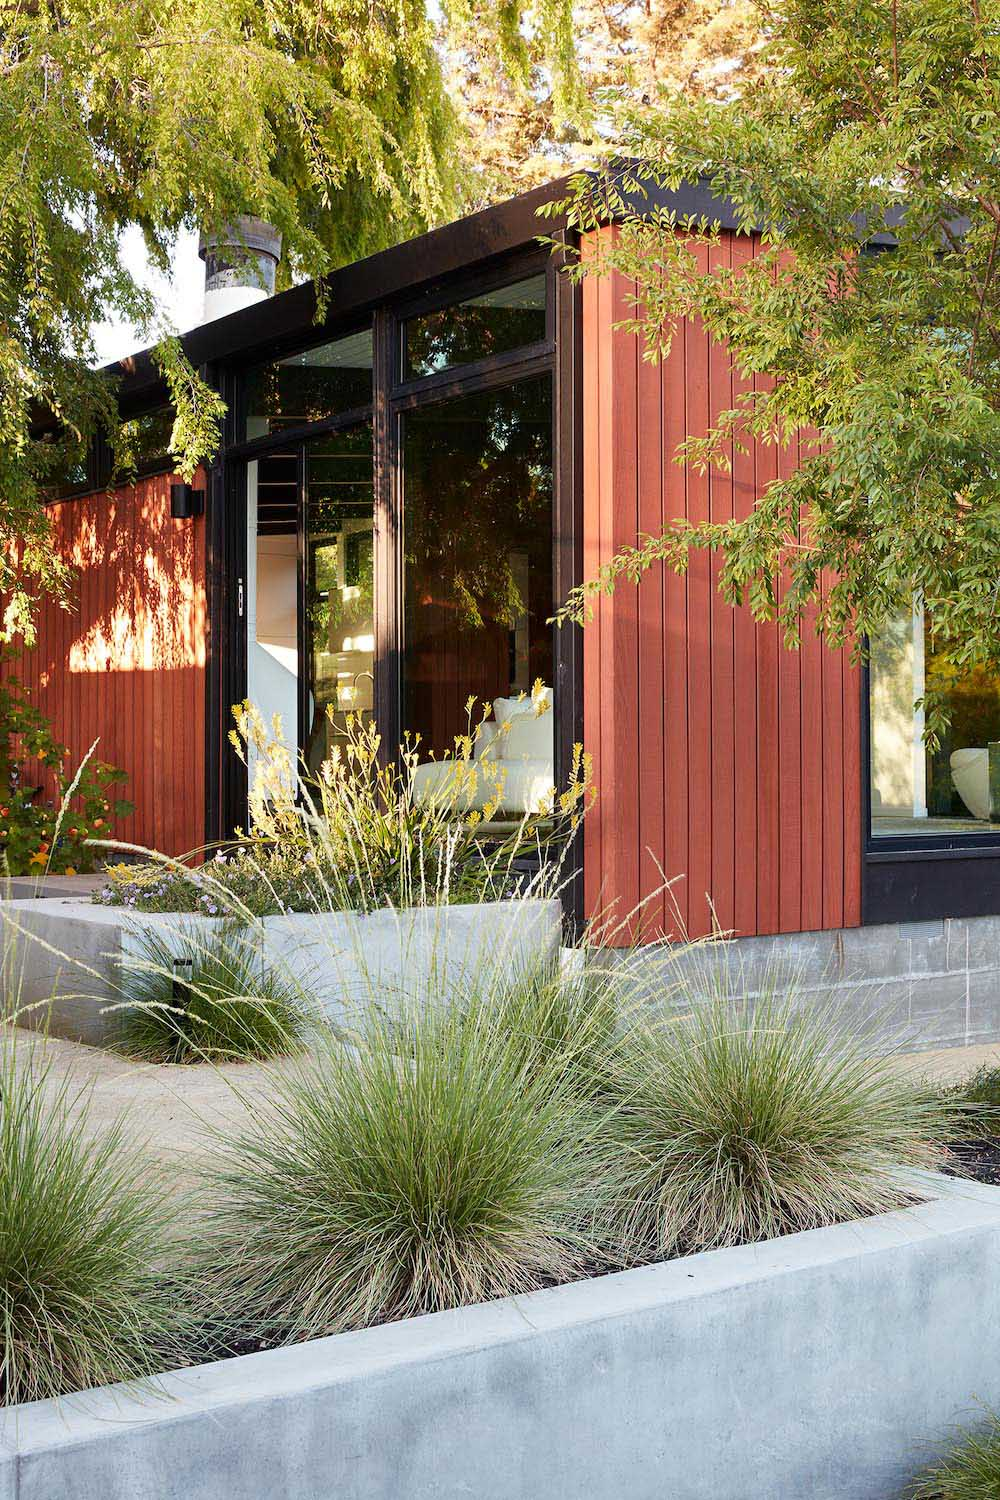 A remodeled mid-century modern house with a mix of relaxing outdoor patio spaces that blend into the native landscaping.